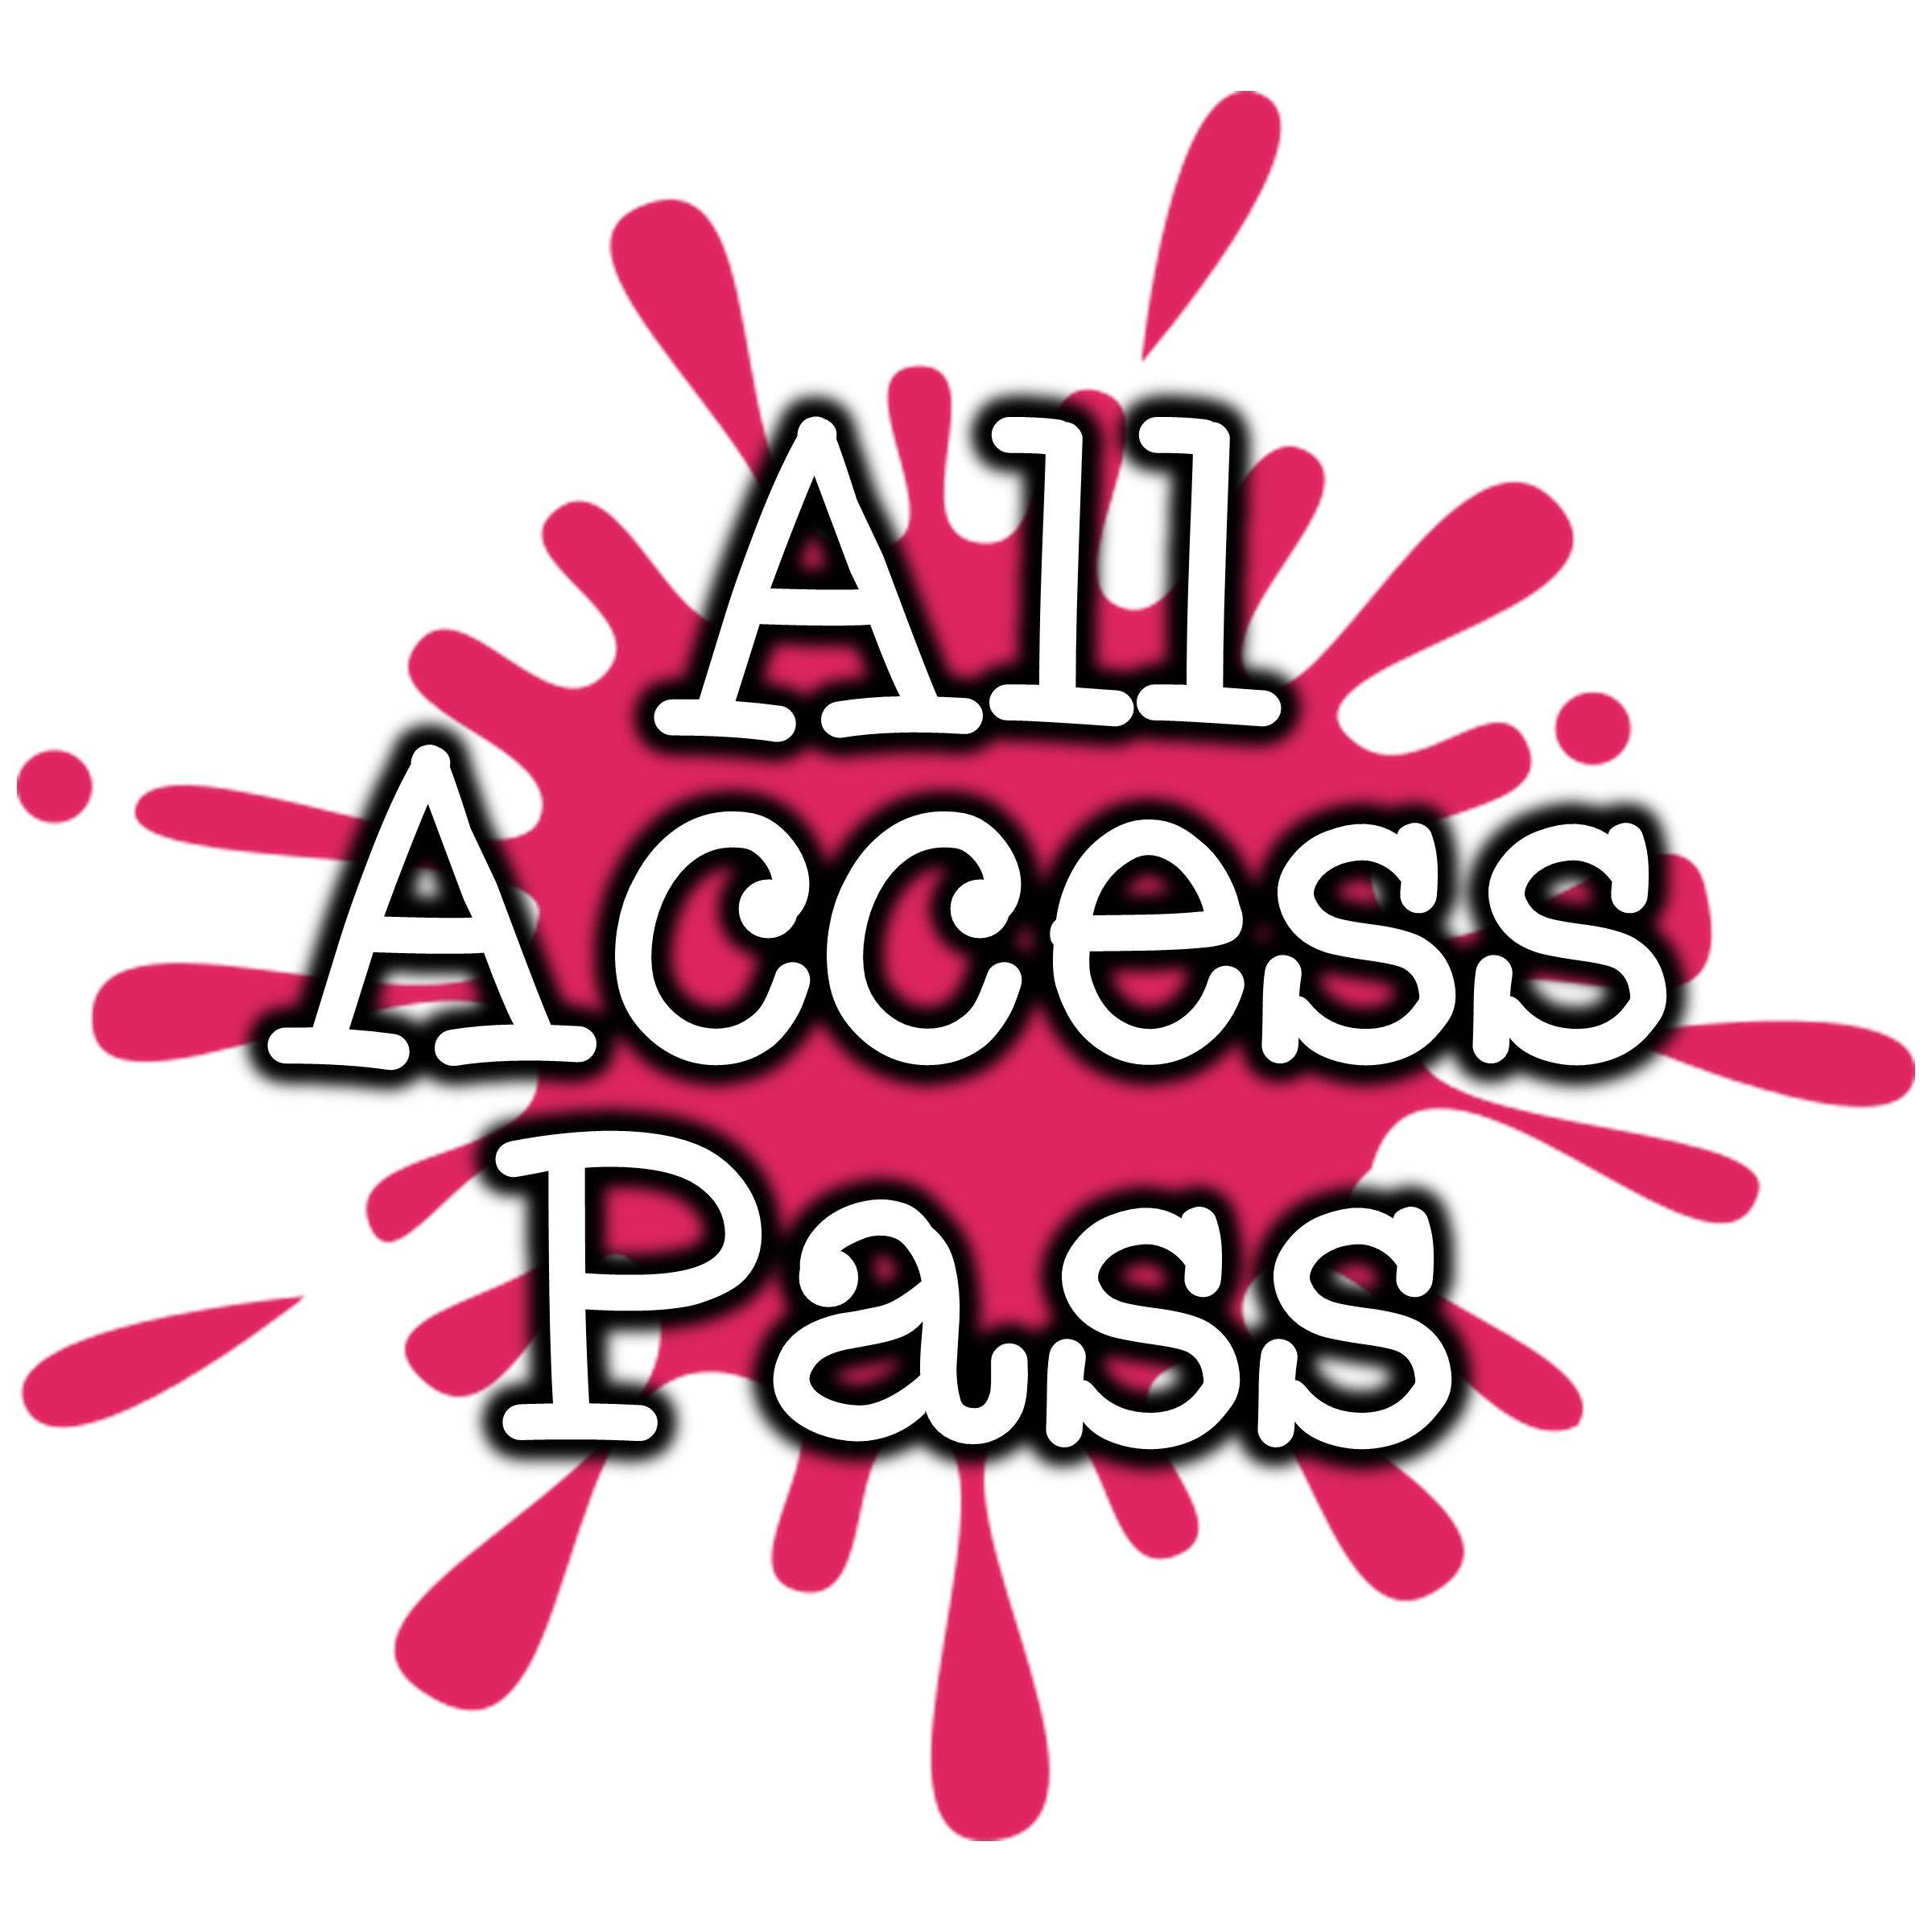 An All Access Pass product for speech therapy materials